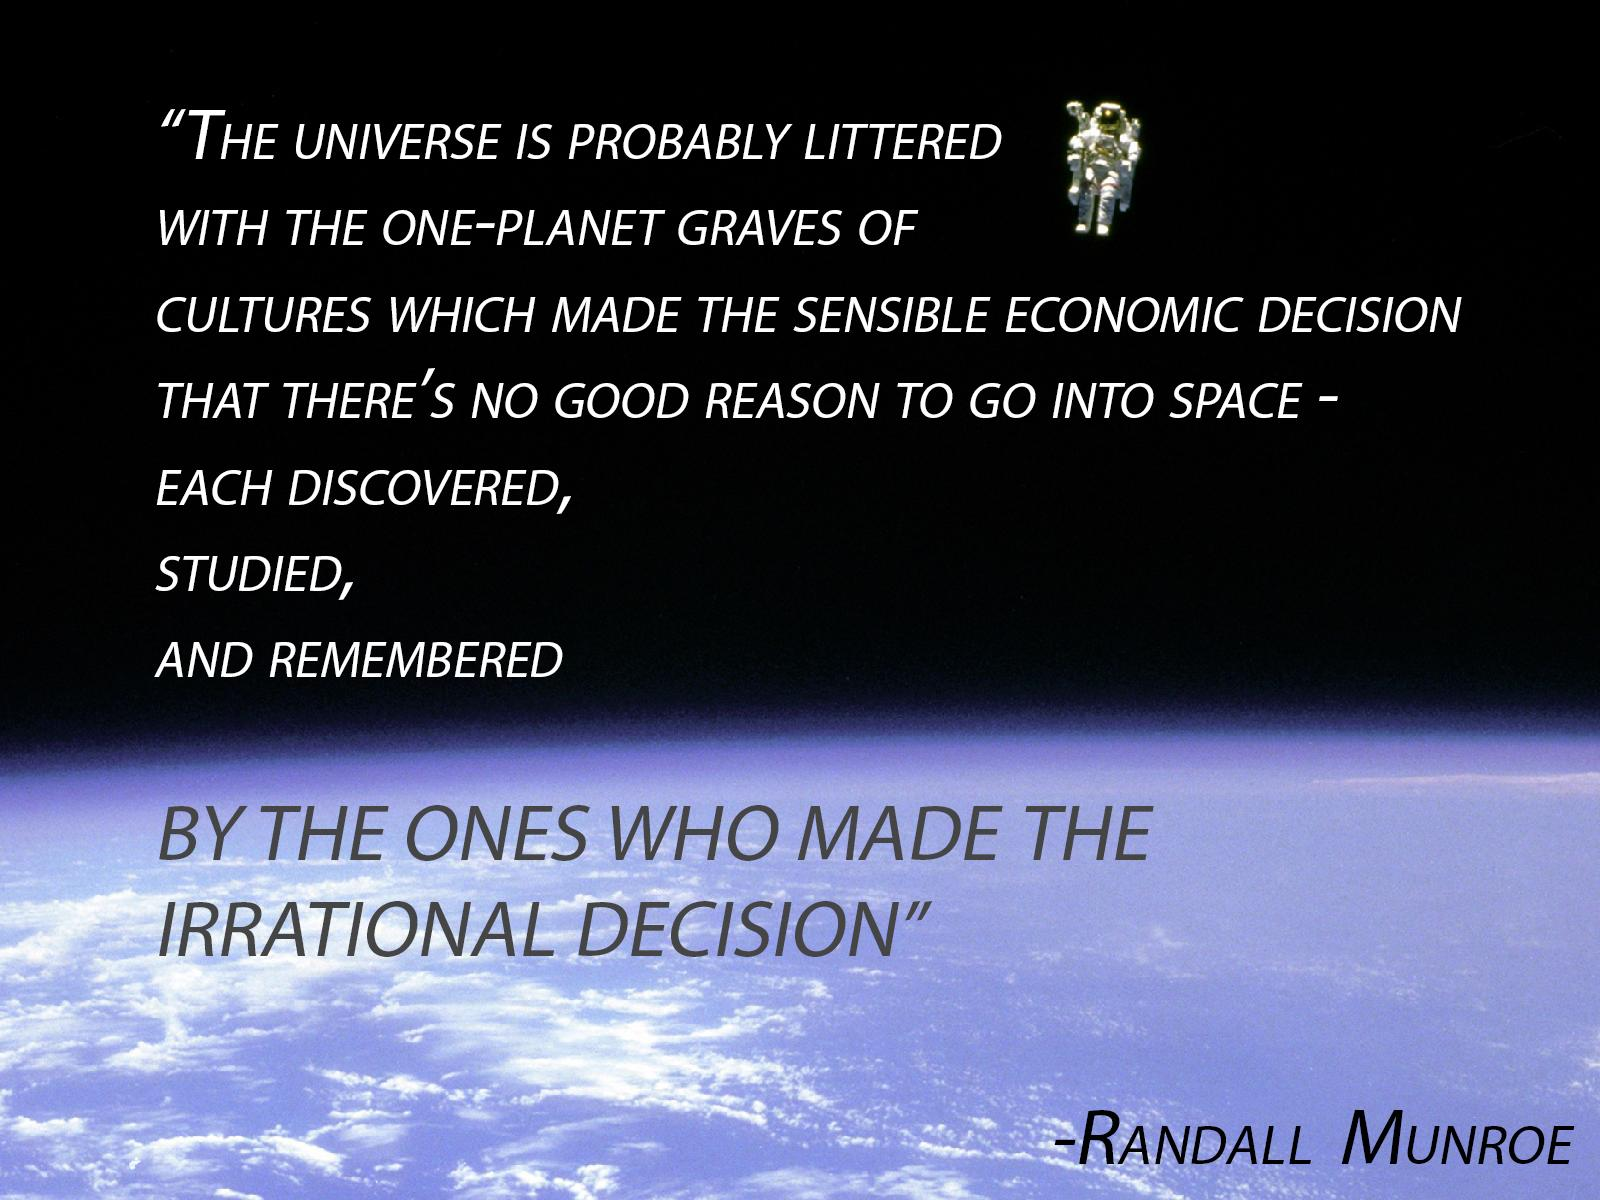 Quotes About Discovery And Exploration Quotesgram: Quotes Against Space Exploration. QuotesGram